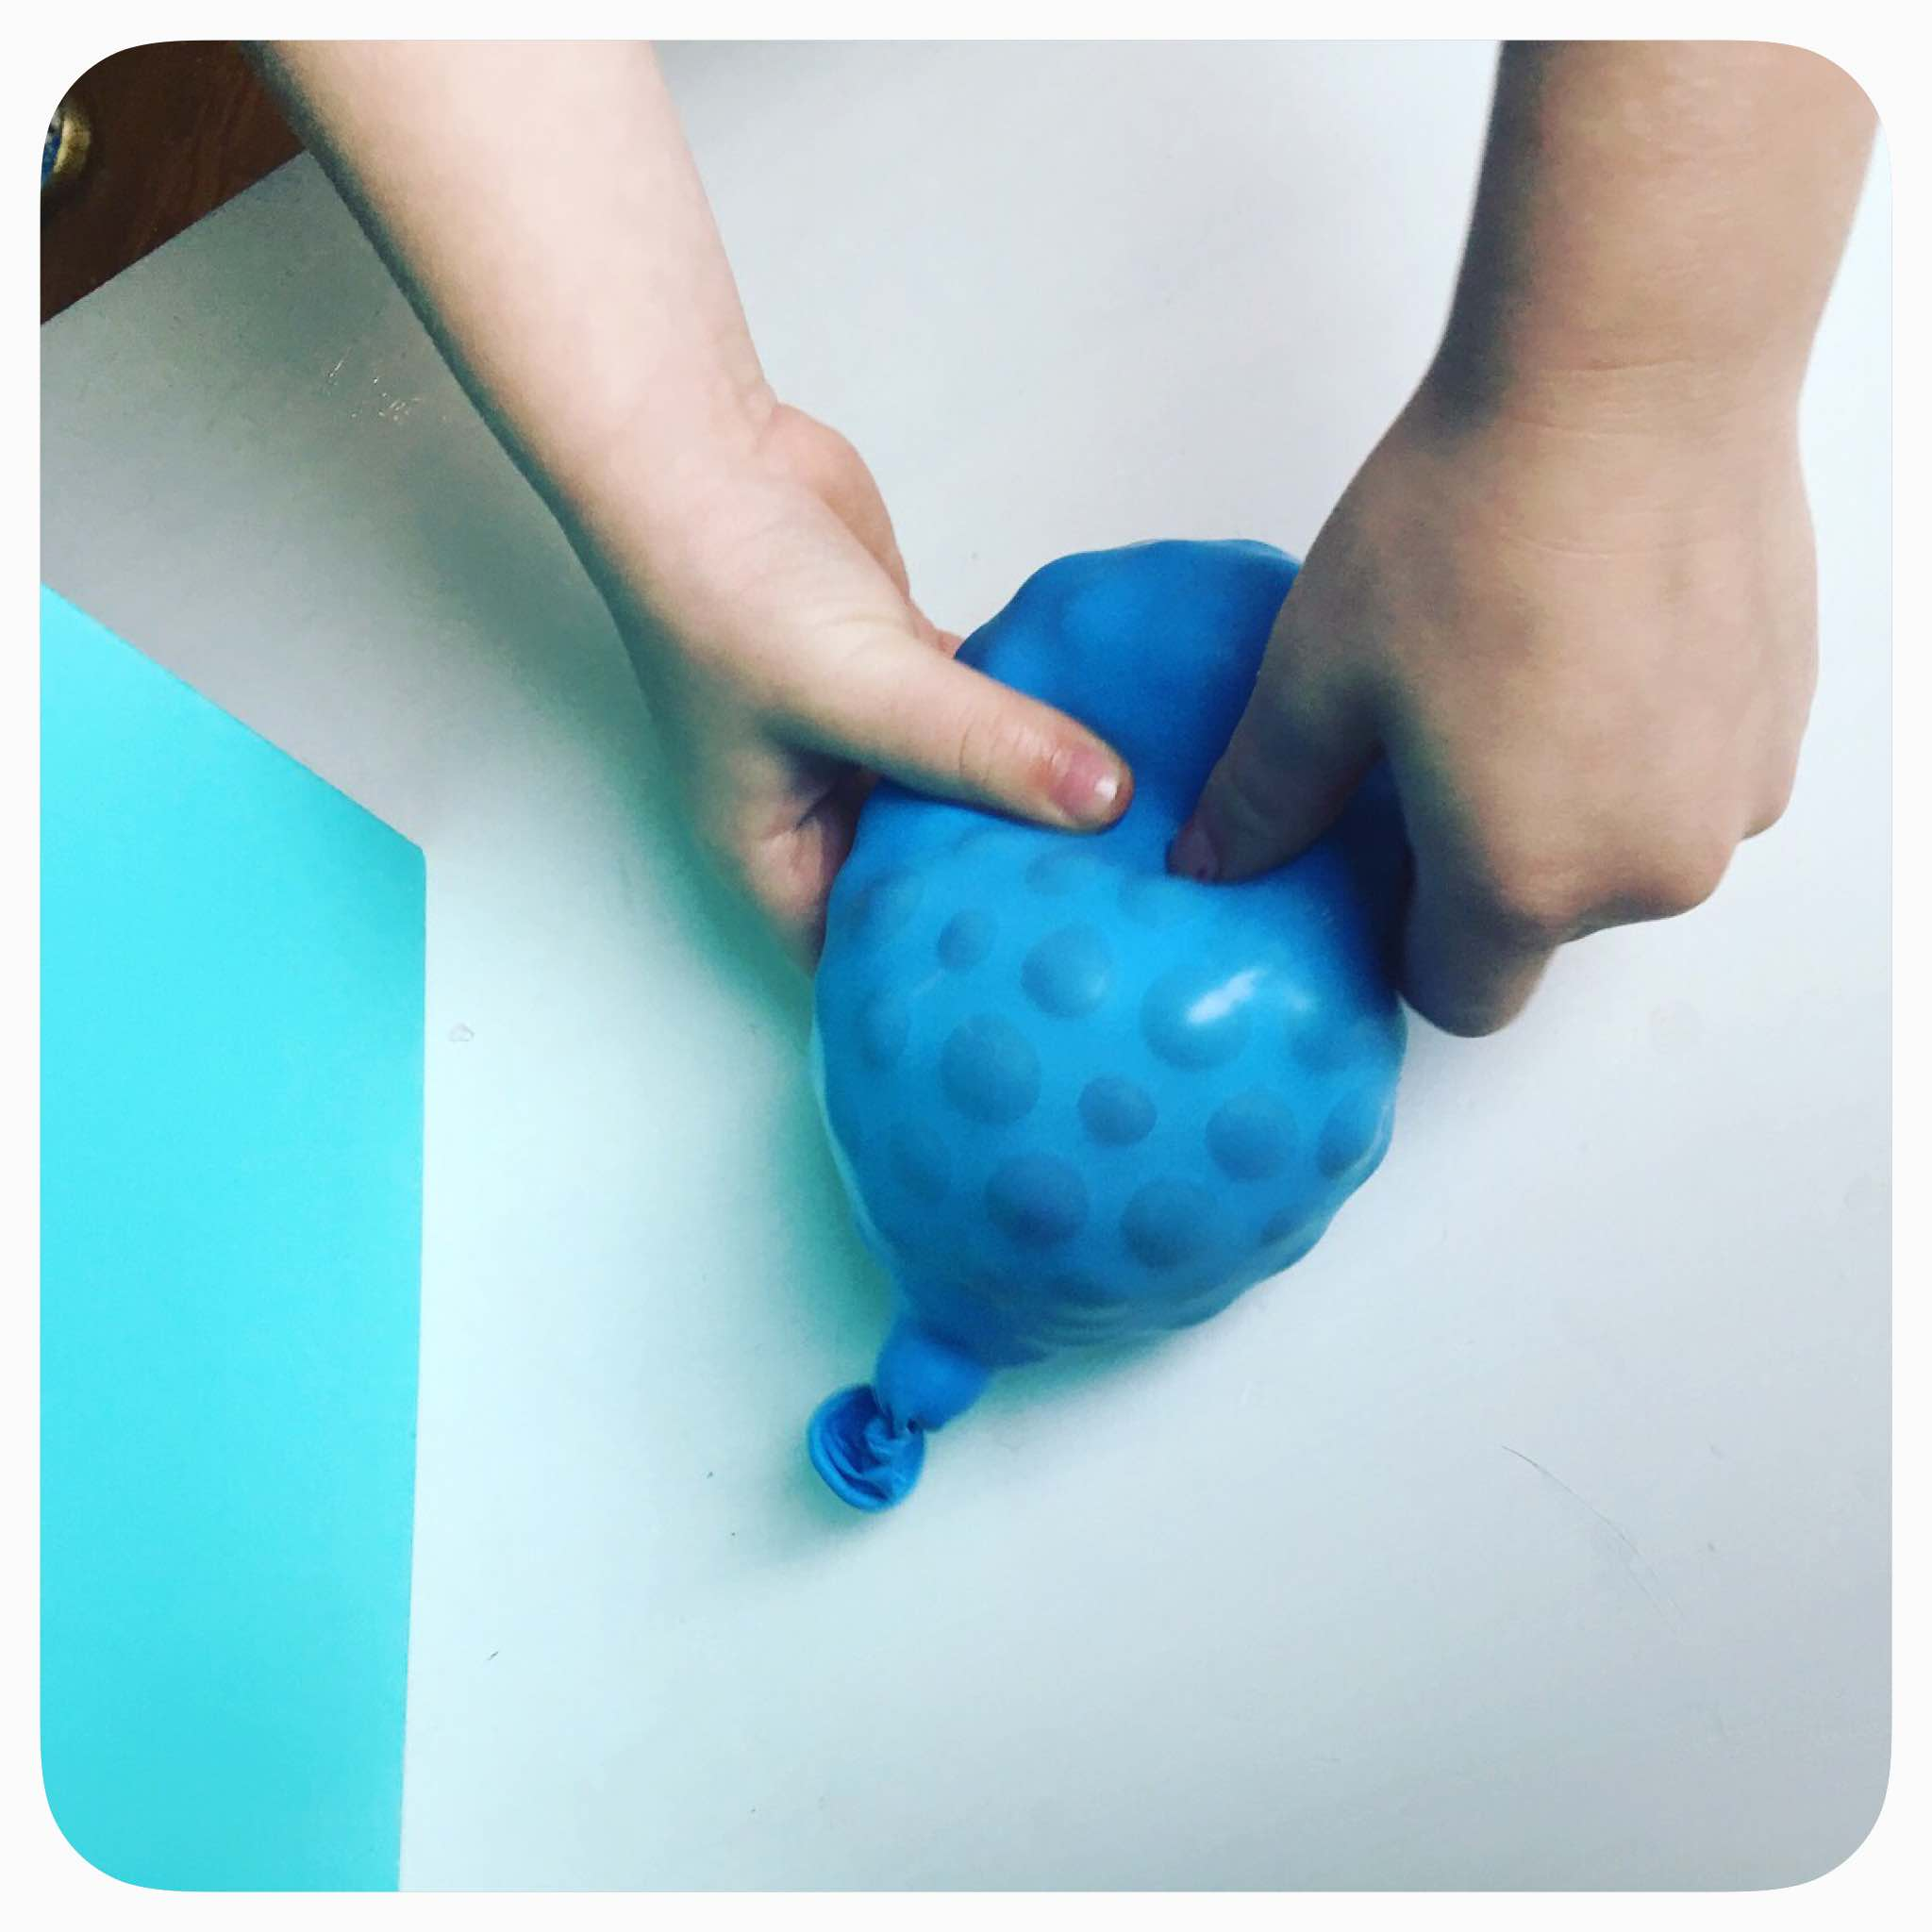 We have had our sensory tub of water beads out for days and wanted to try something new - bring on the balloons! Simple and fun activity your children can do. DIY Stress Ball using water beads / Orbeez